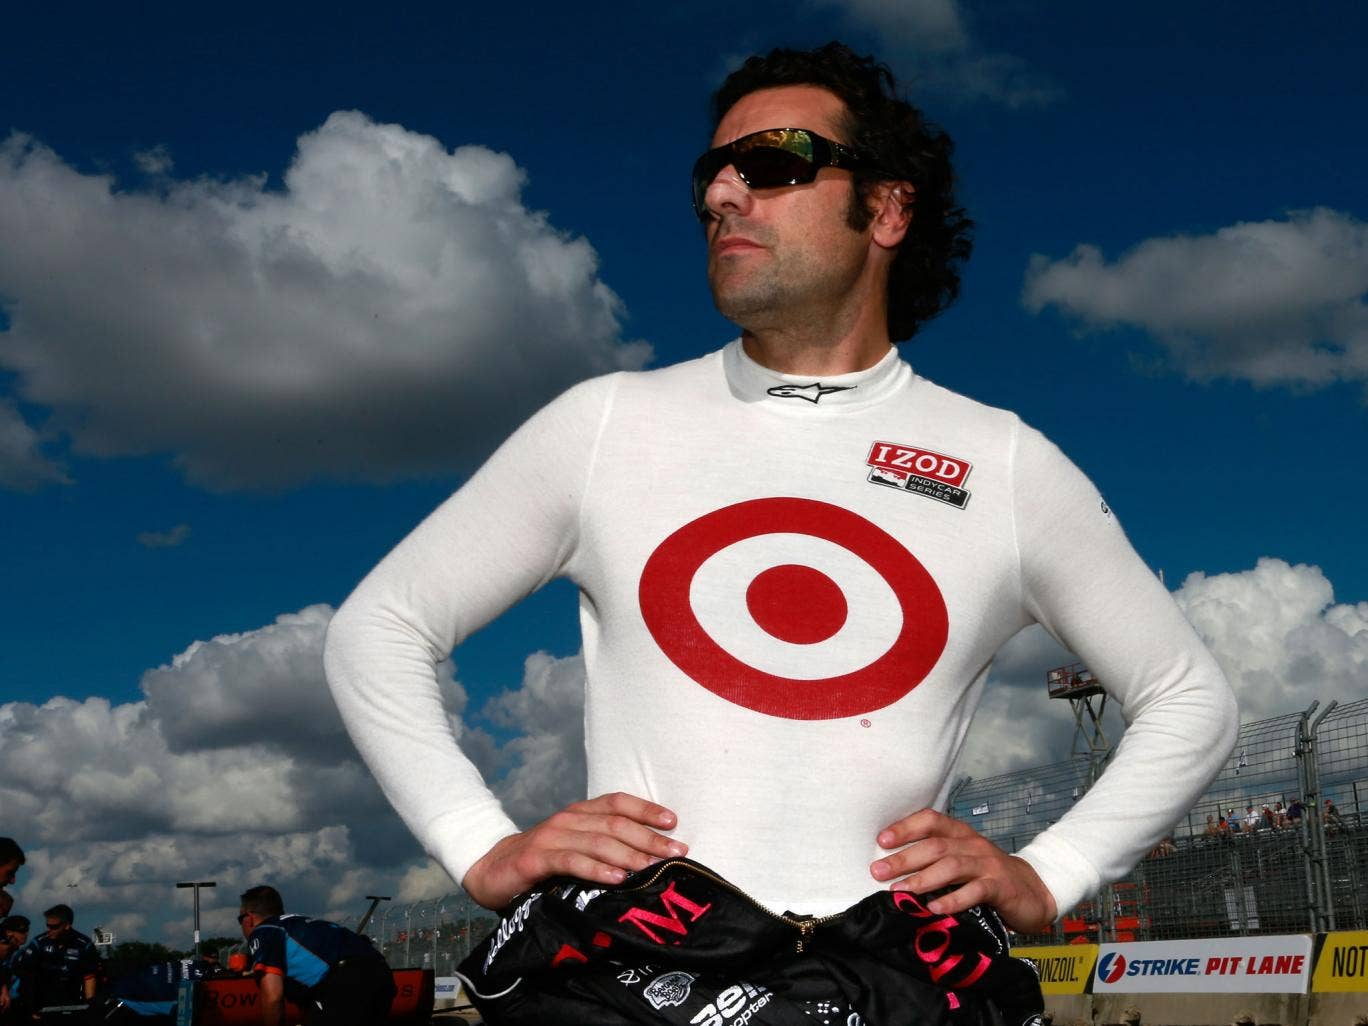 Four-time IndyCar champion Dario Franchitti has been forced to retire from racing after injuries sustained in a horror crash at the Grand Prix of Houston last month